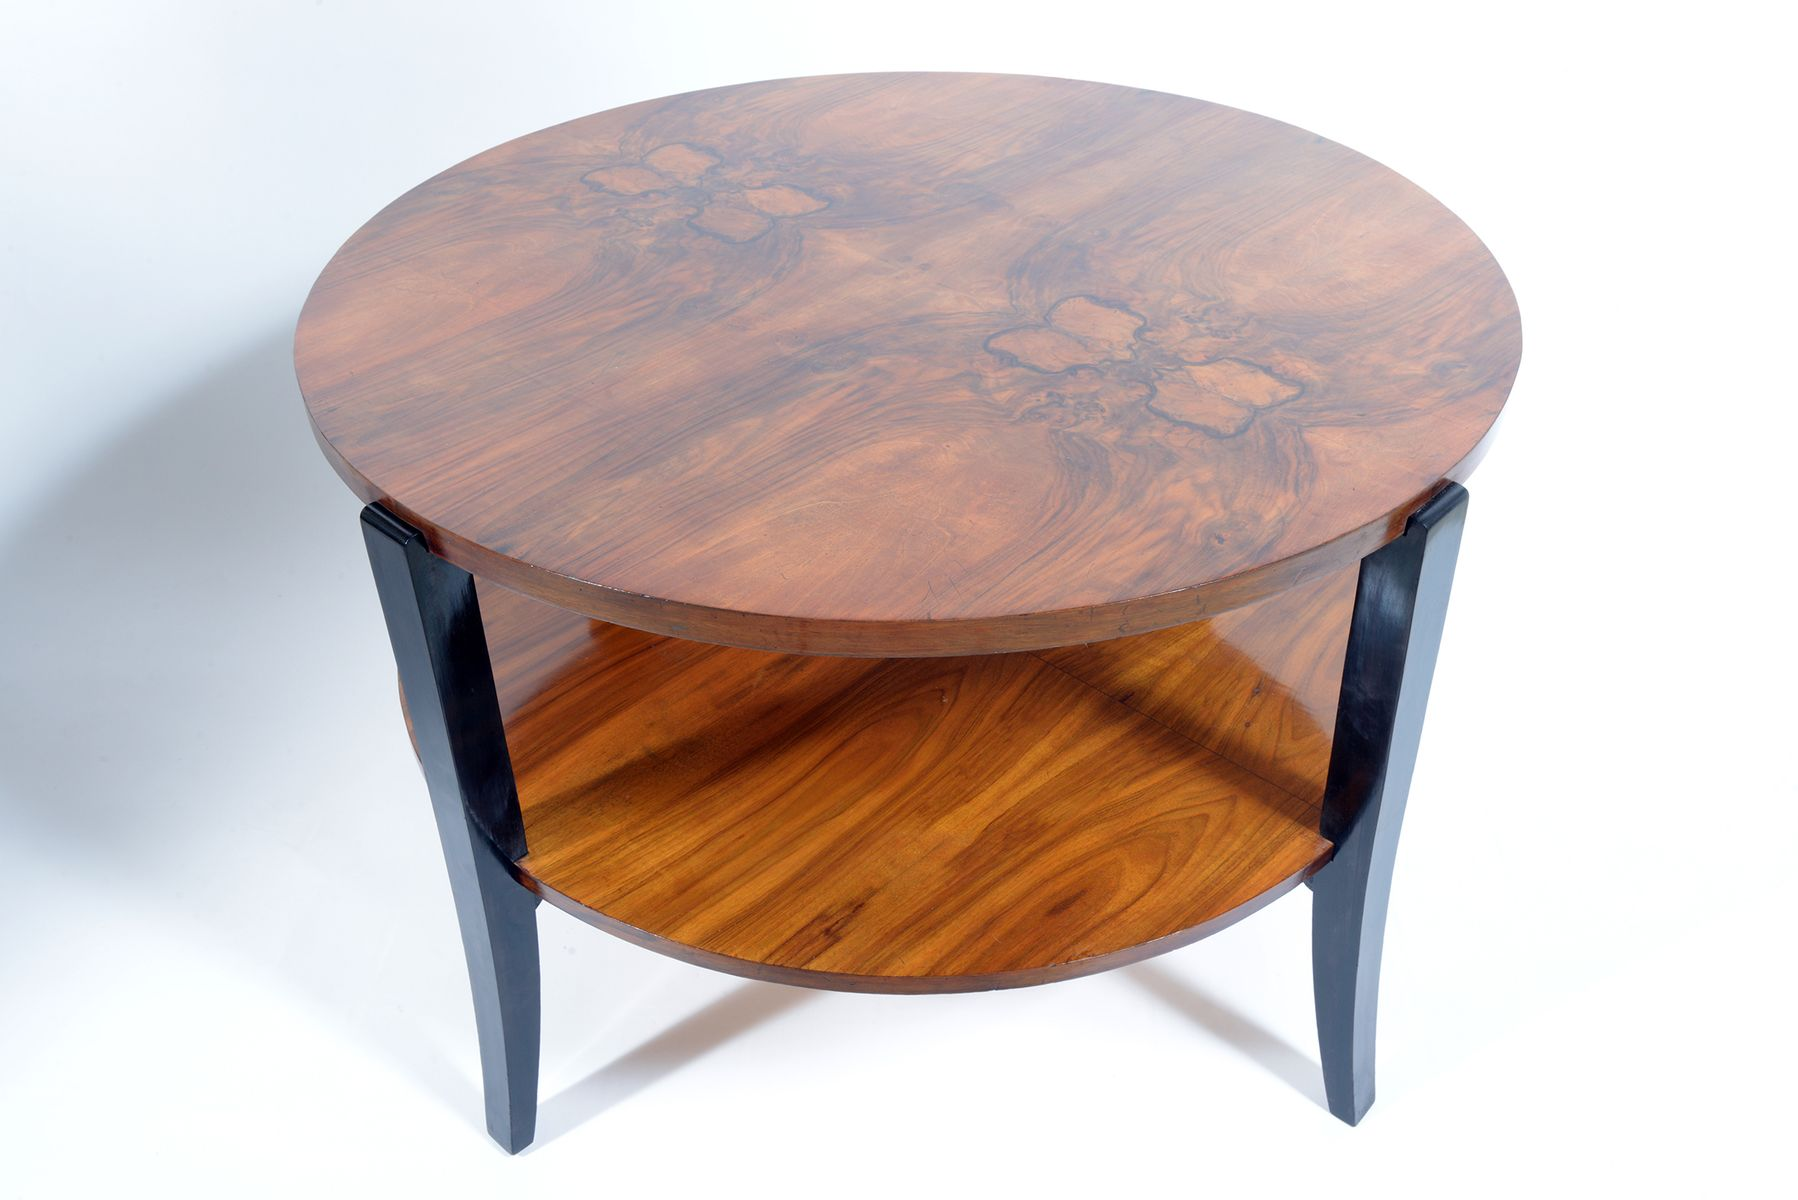 Large Round Two Tiered Art Deco Burl Walnut Coffee Table 1935 For Sale At Pamono